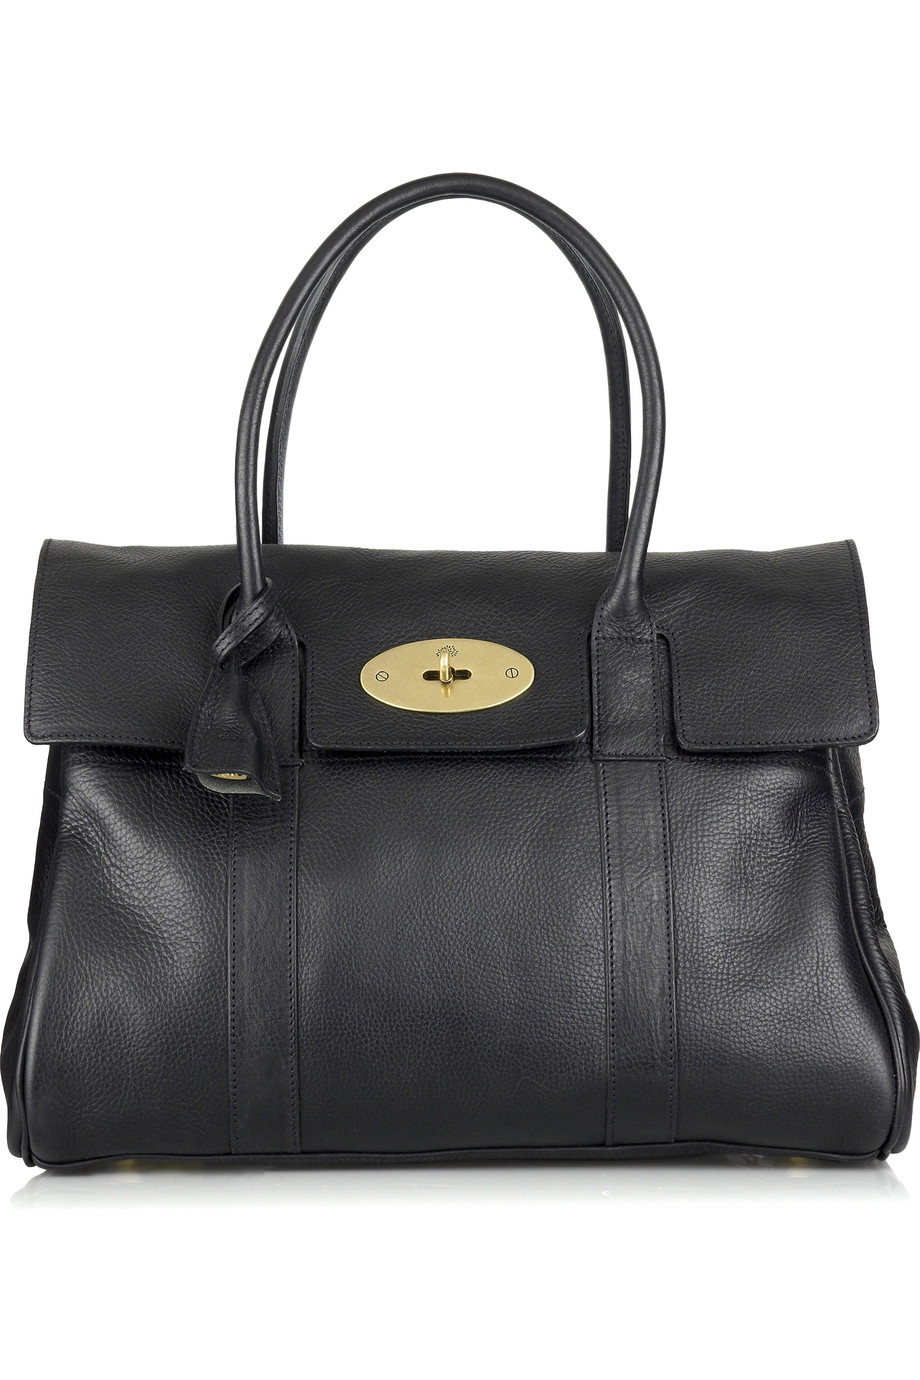 Mulberry bayswater leather bag in black lyst for The bayswater